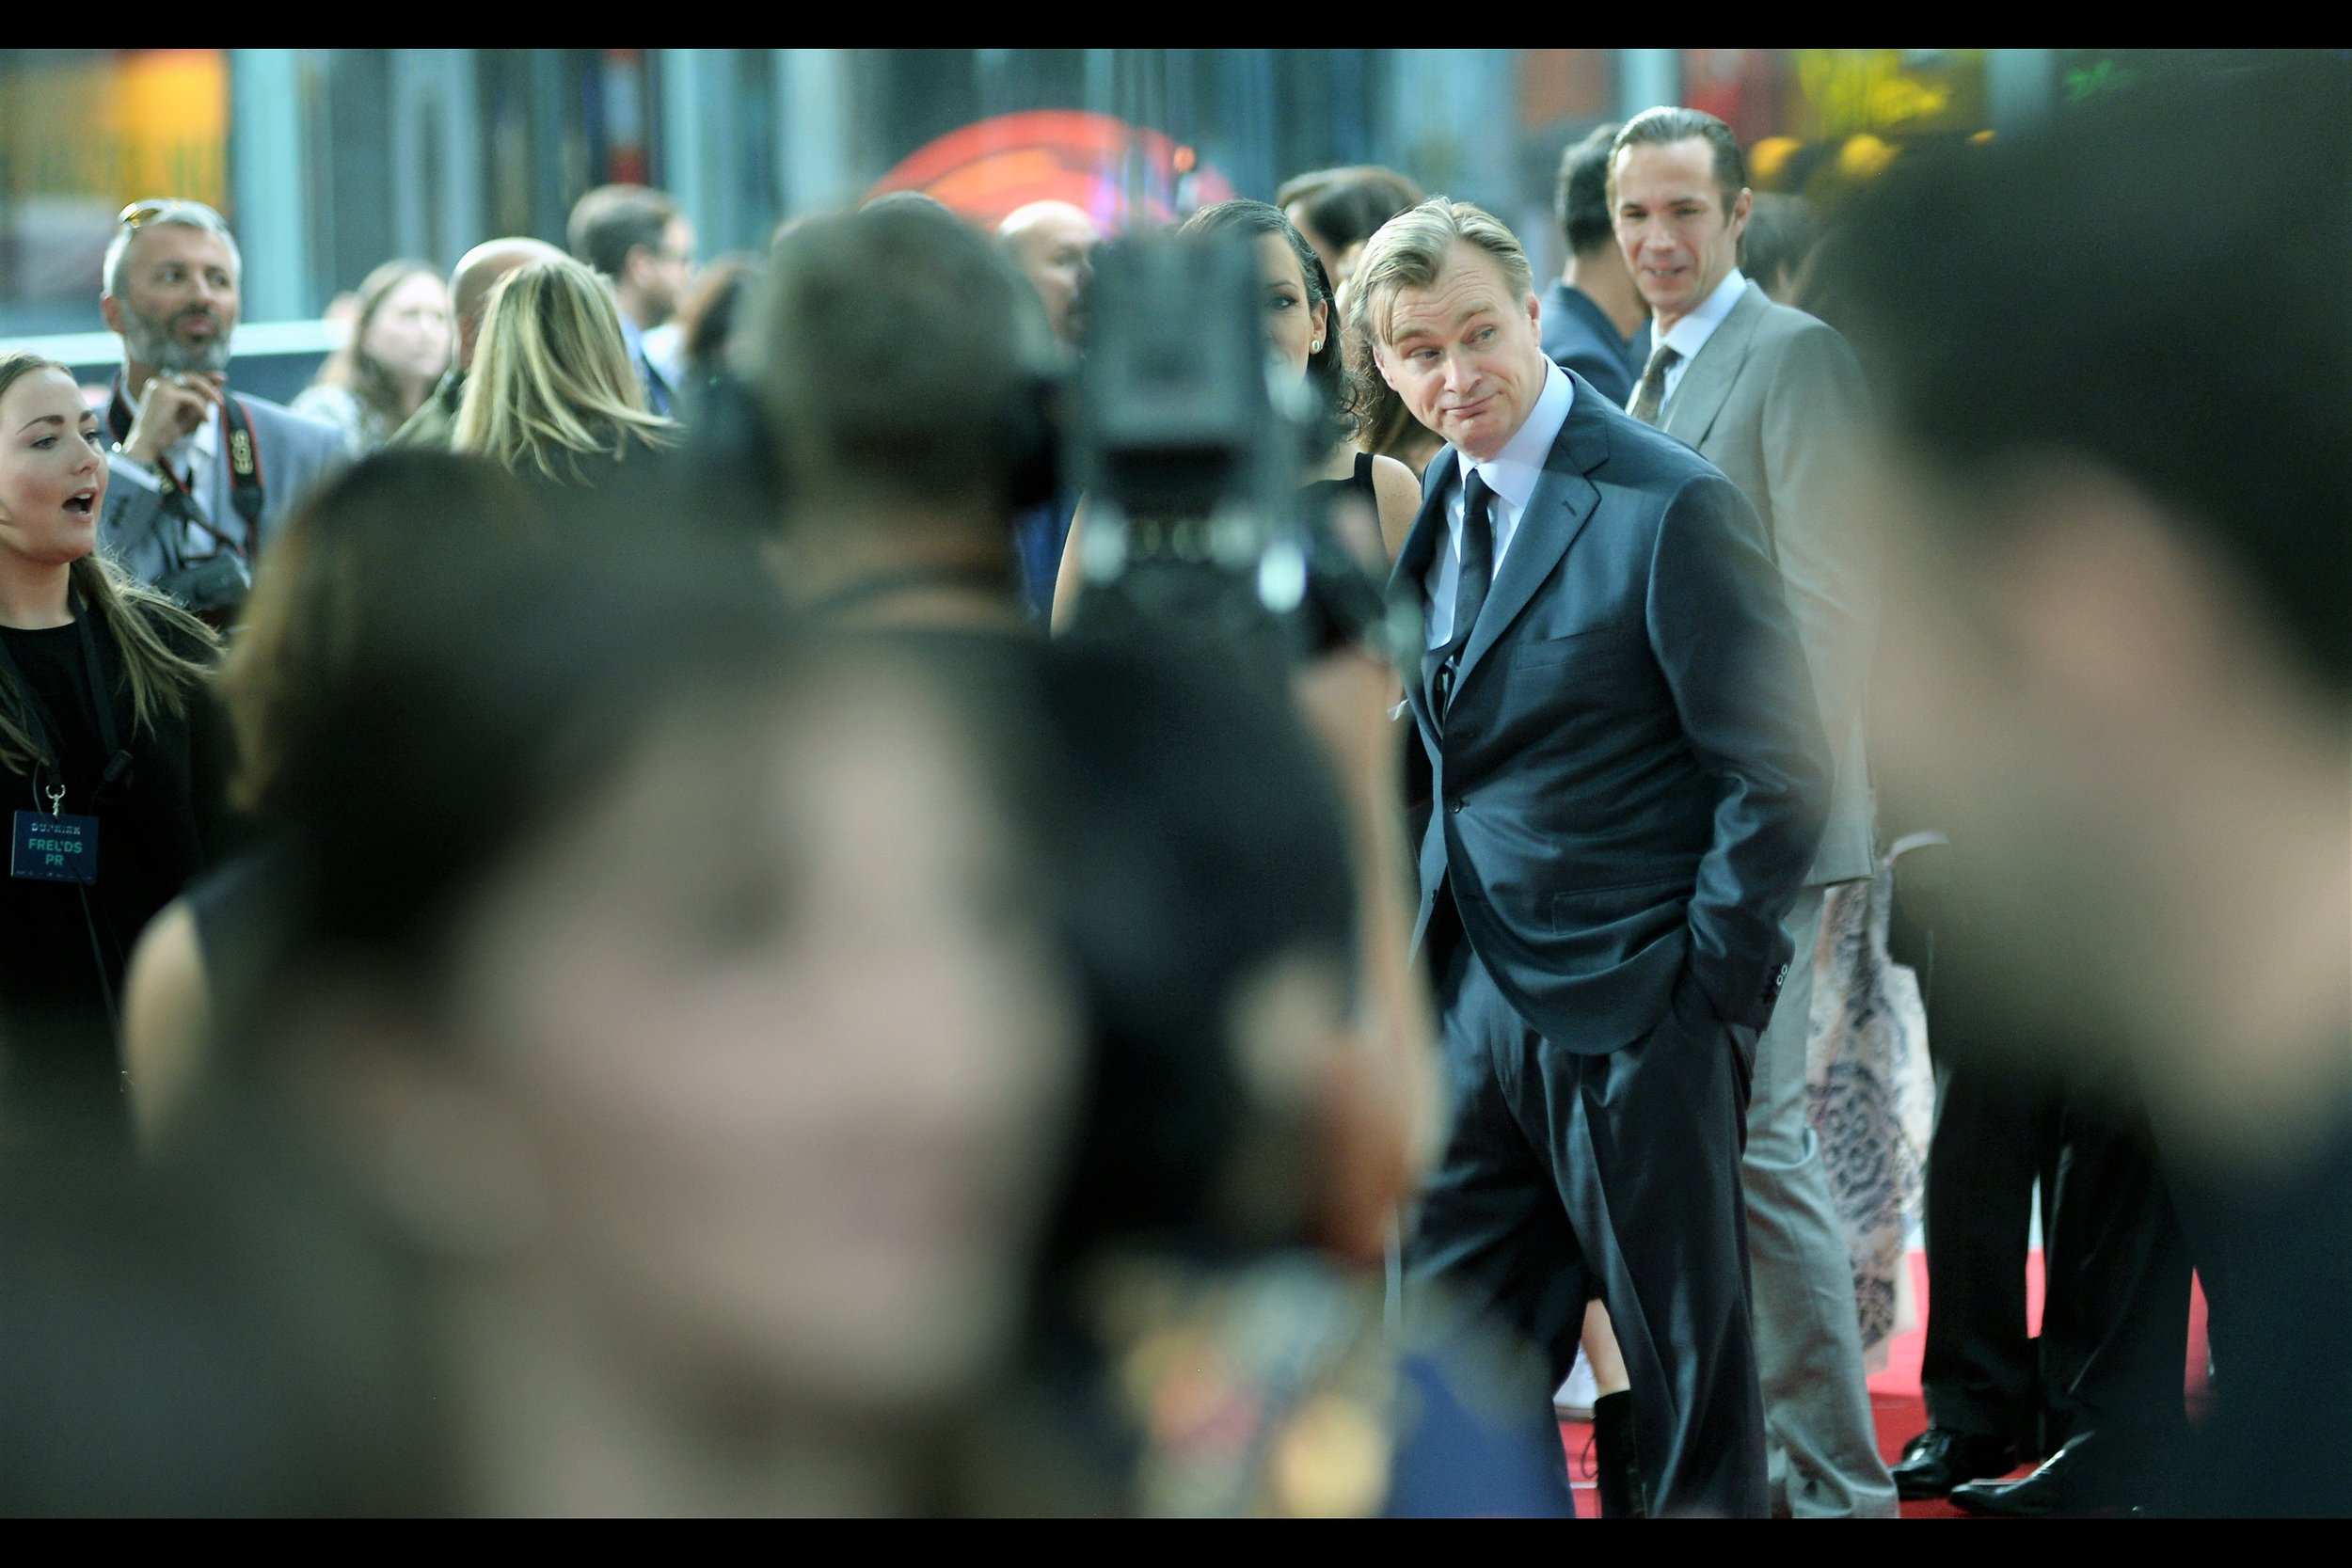 It's Christopher Nolan! I missed photographing him entirely at the premiere of   The Dark Knight ,  I was outside the premiere centre at the premiere of   The Dark Knight Rises  , I missed out on getting his autograph by about 1.5 people at the premiere of   Interstellar  , and in about 10minutes he's going to  almost  look at my Moleskine and decide....  nah... next time maybe.